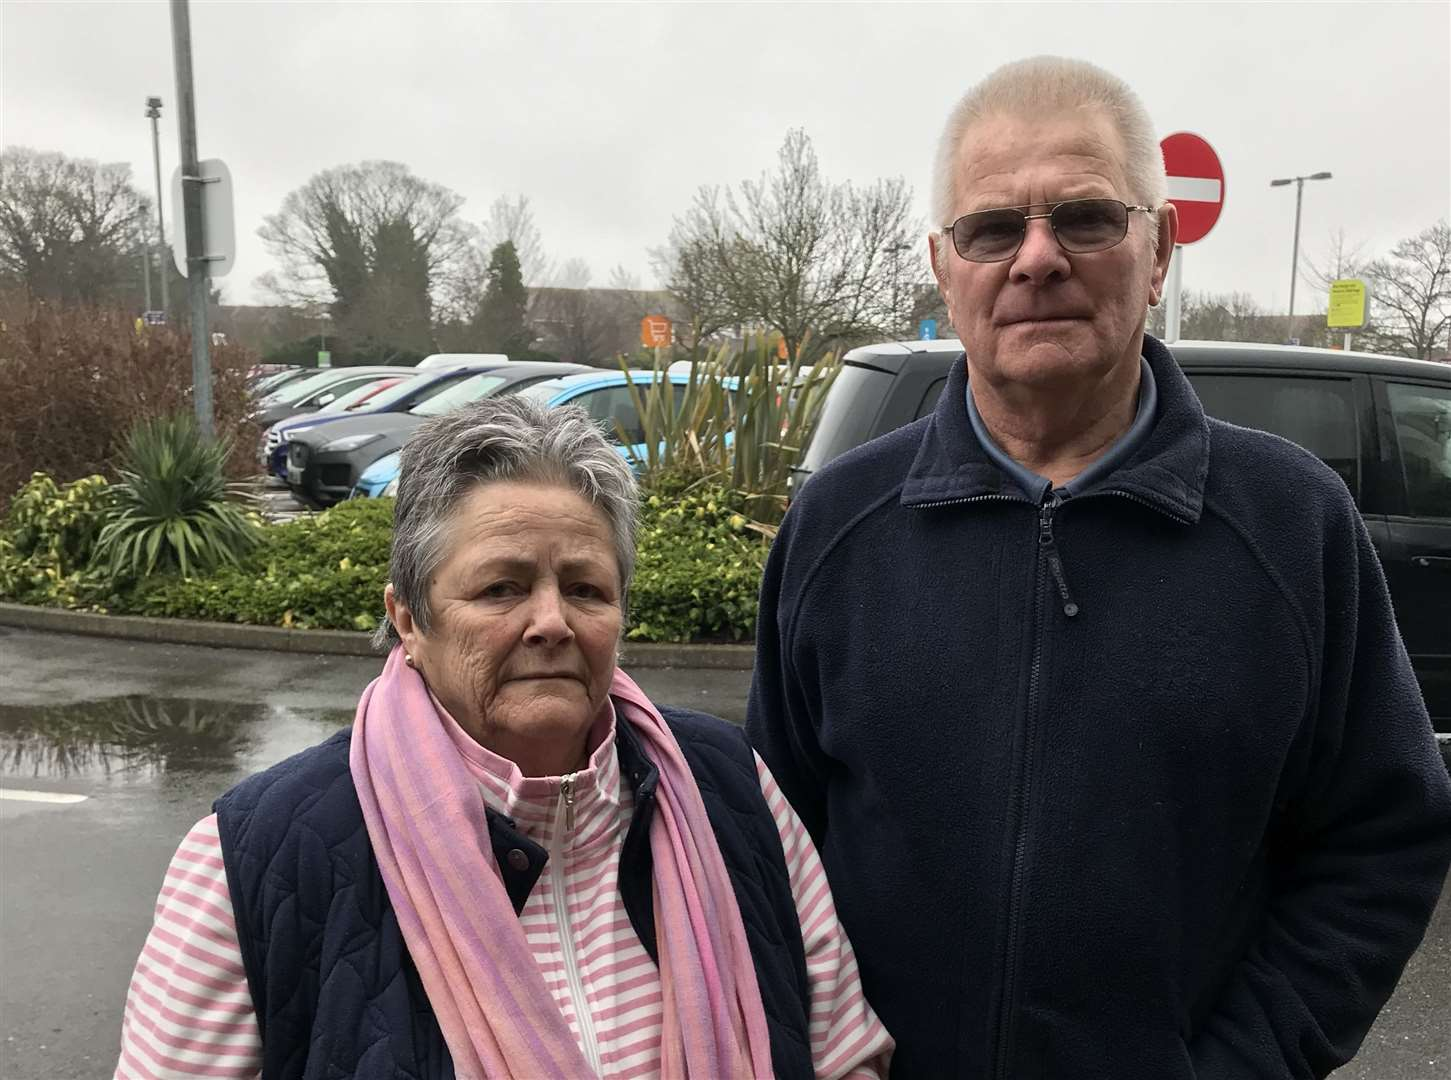 Miriam and Chris Riddles of Bay View, Sheppey, left Sainsbury's empty-handed (31943182)